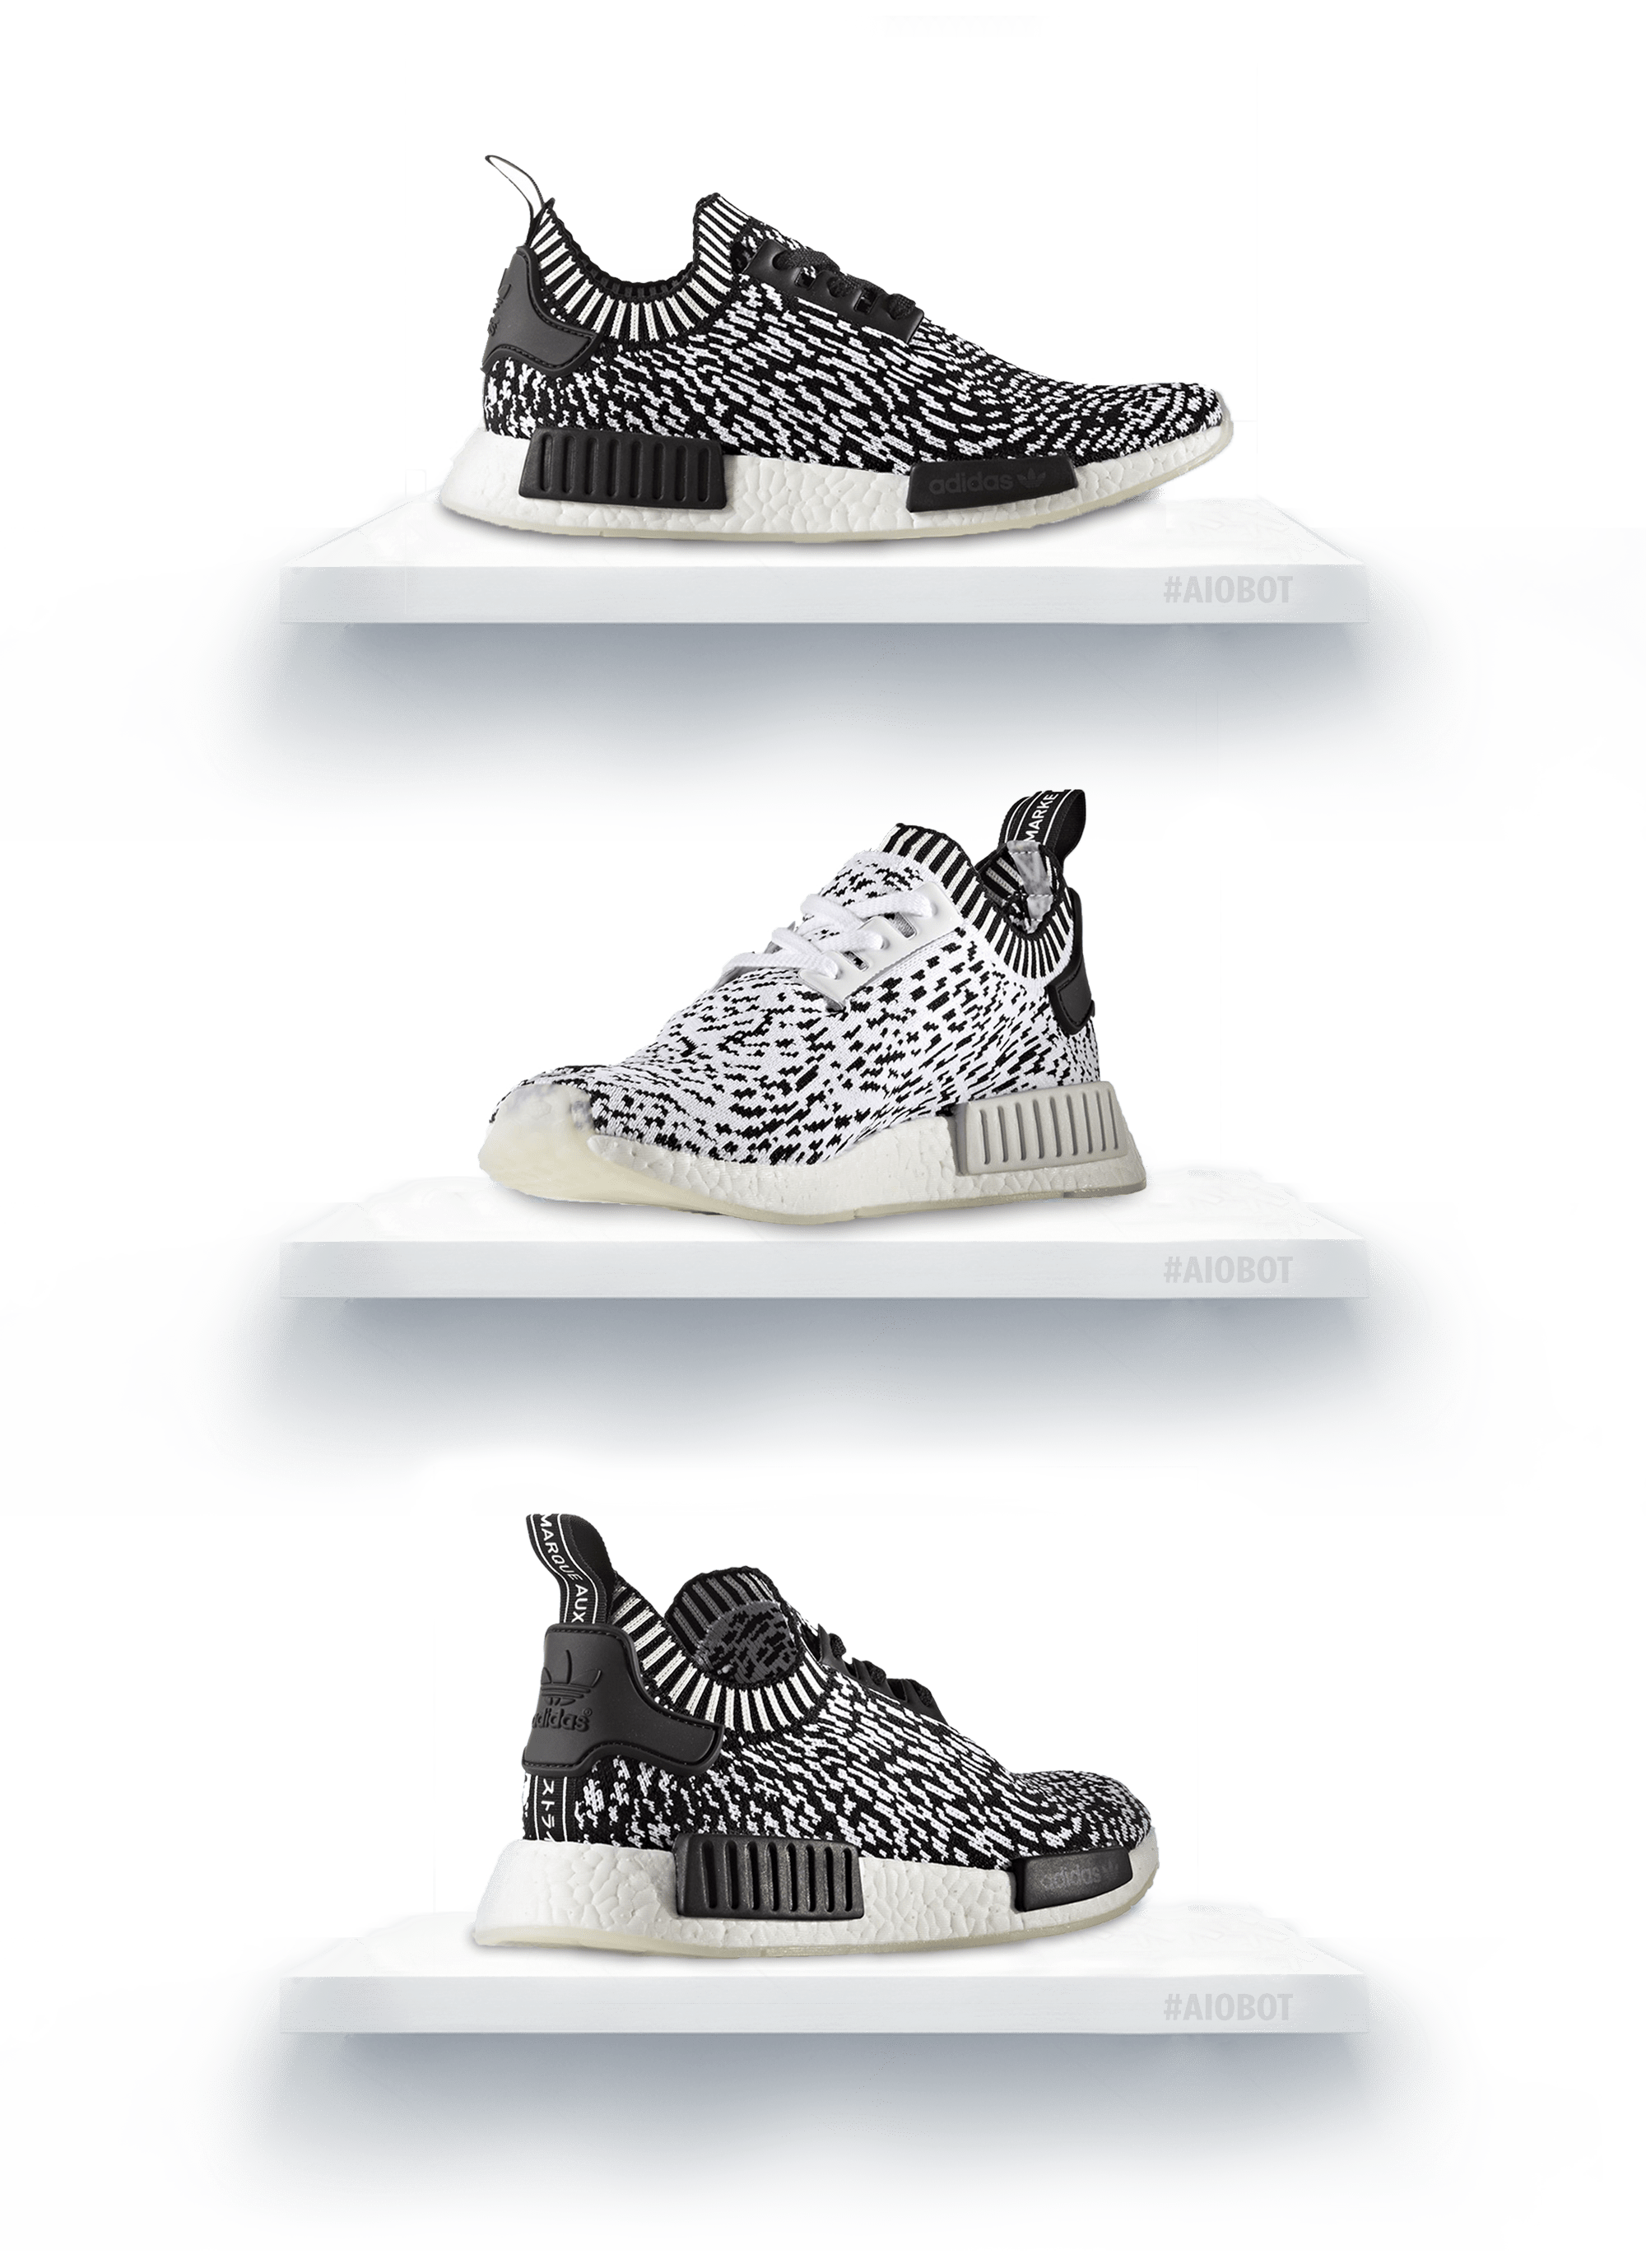 adidas NMD R1 PK Winter Wool Primeknit Black BB0679 Singapore